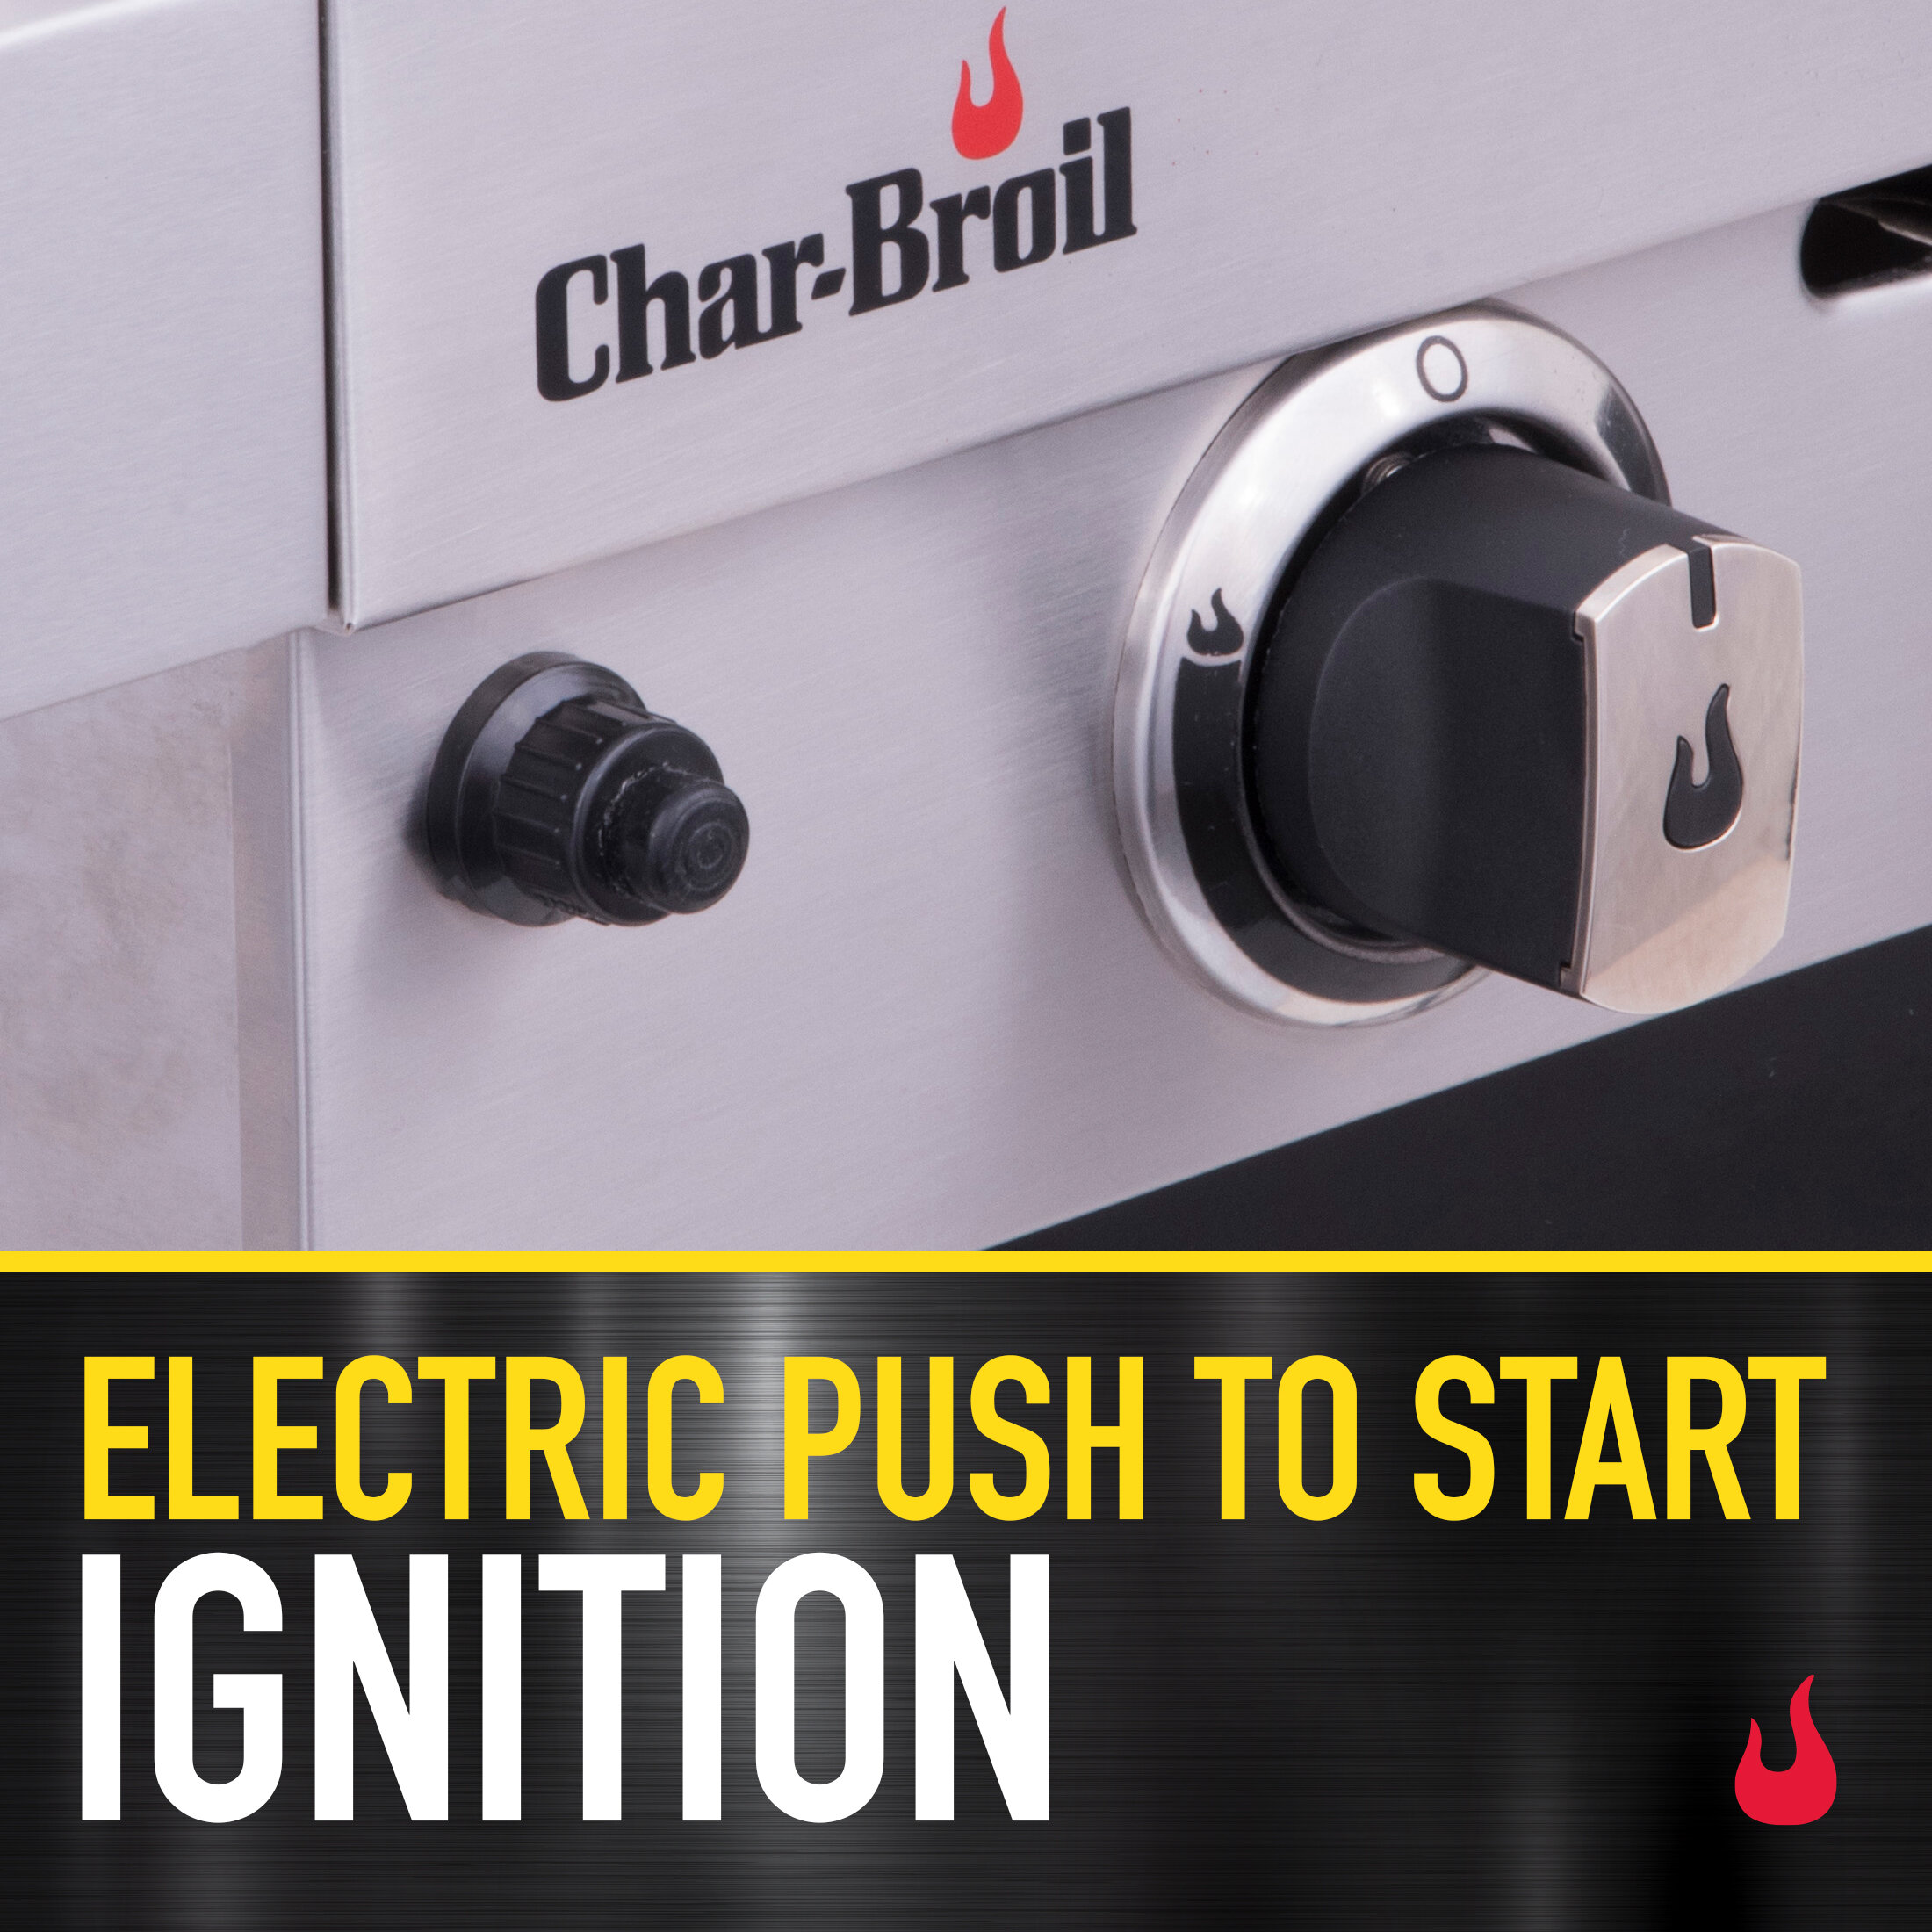 Electric Push-to-Start Ignition